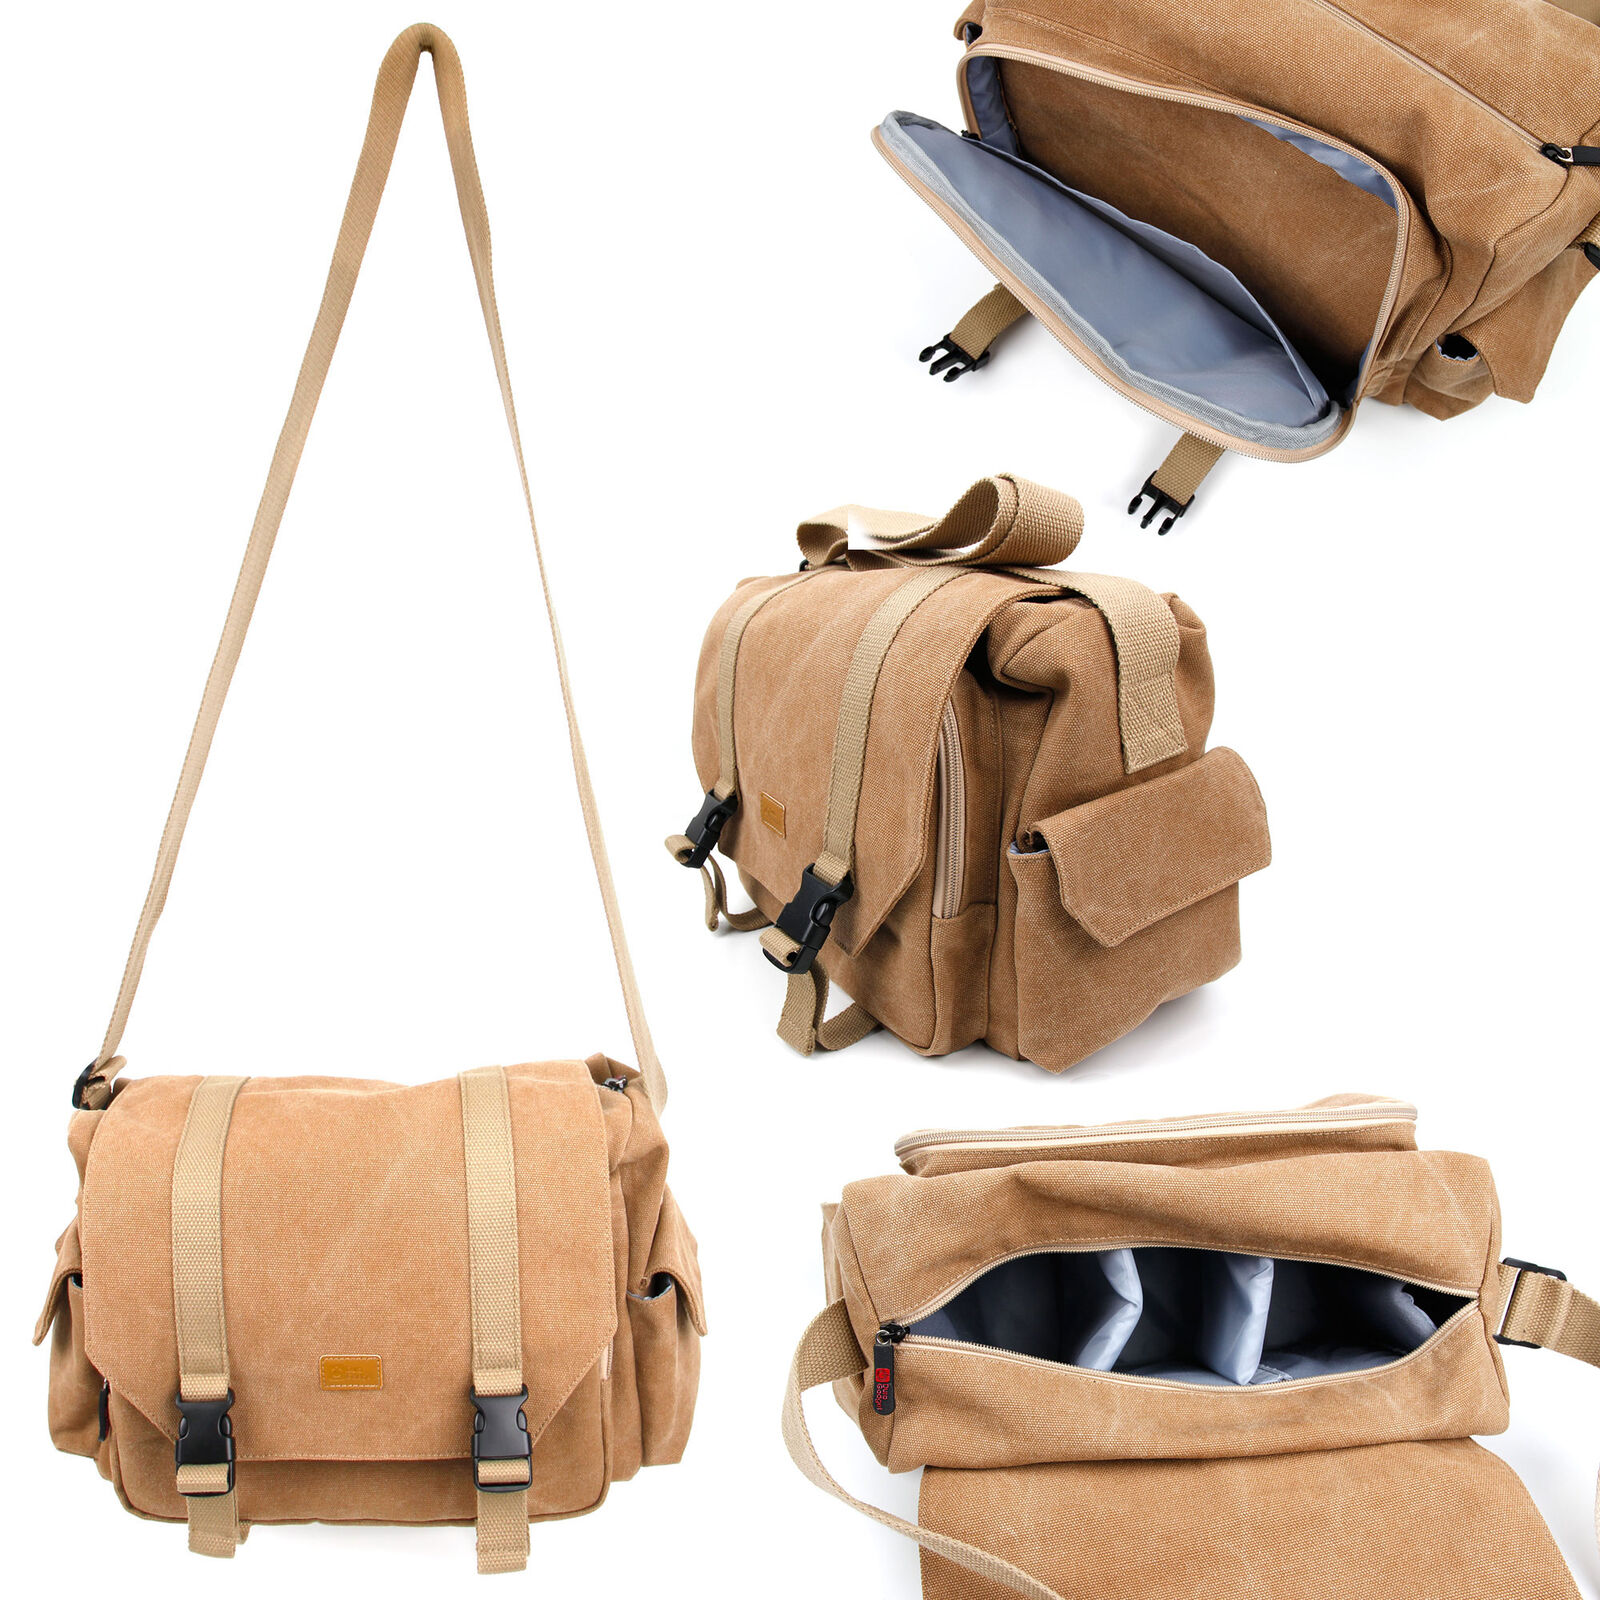 Light Brown Canvas Carry Bag For Canon Powershot Sx530 Hs Sx610 Hs Sx710 Hs